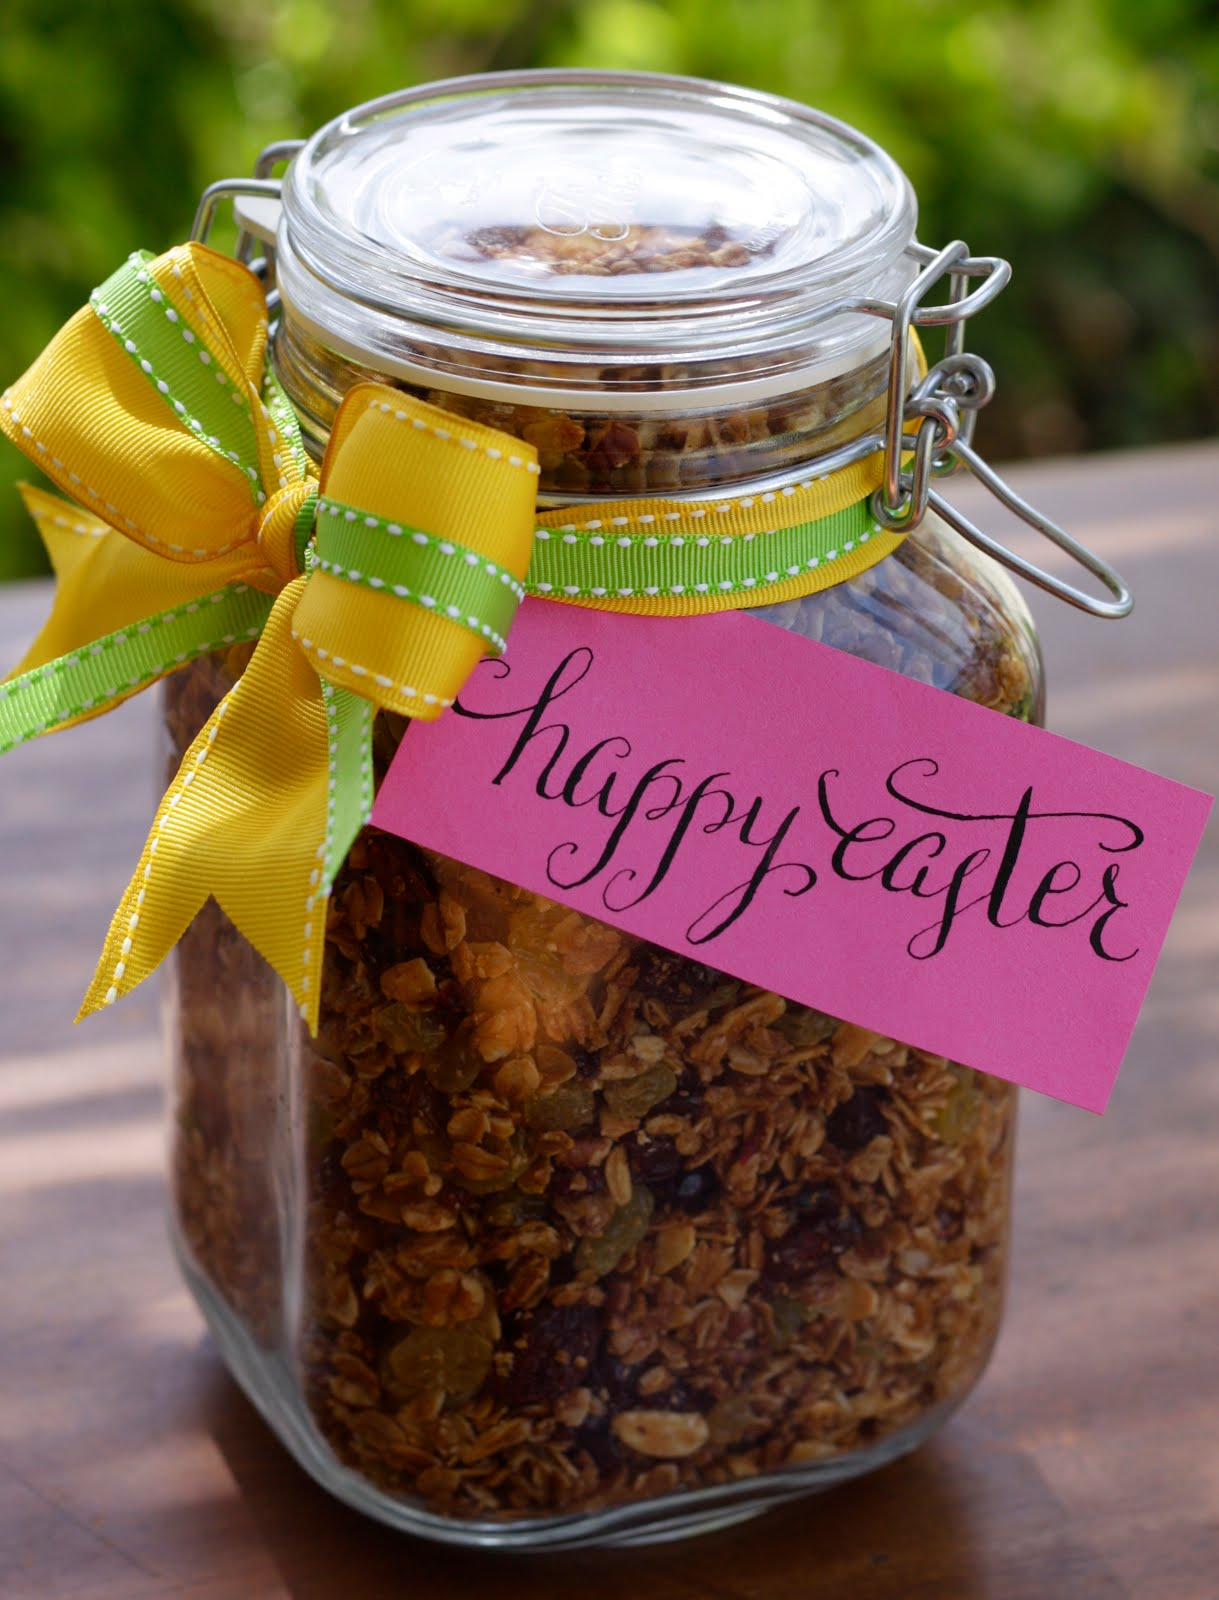 In good taste diy easter gift i made this as a little gift for my boyfriends family for easter its so simple to make yourself and who wouldnt want a jar full of homemade granola negle Gallery